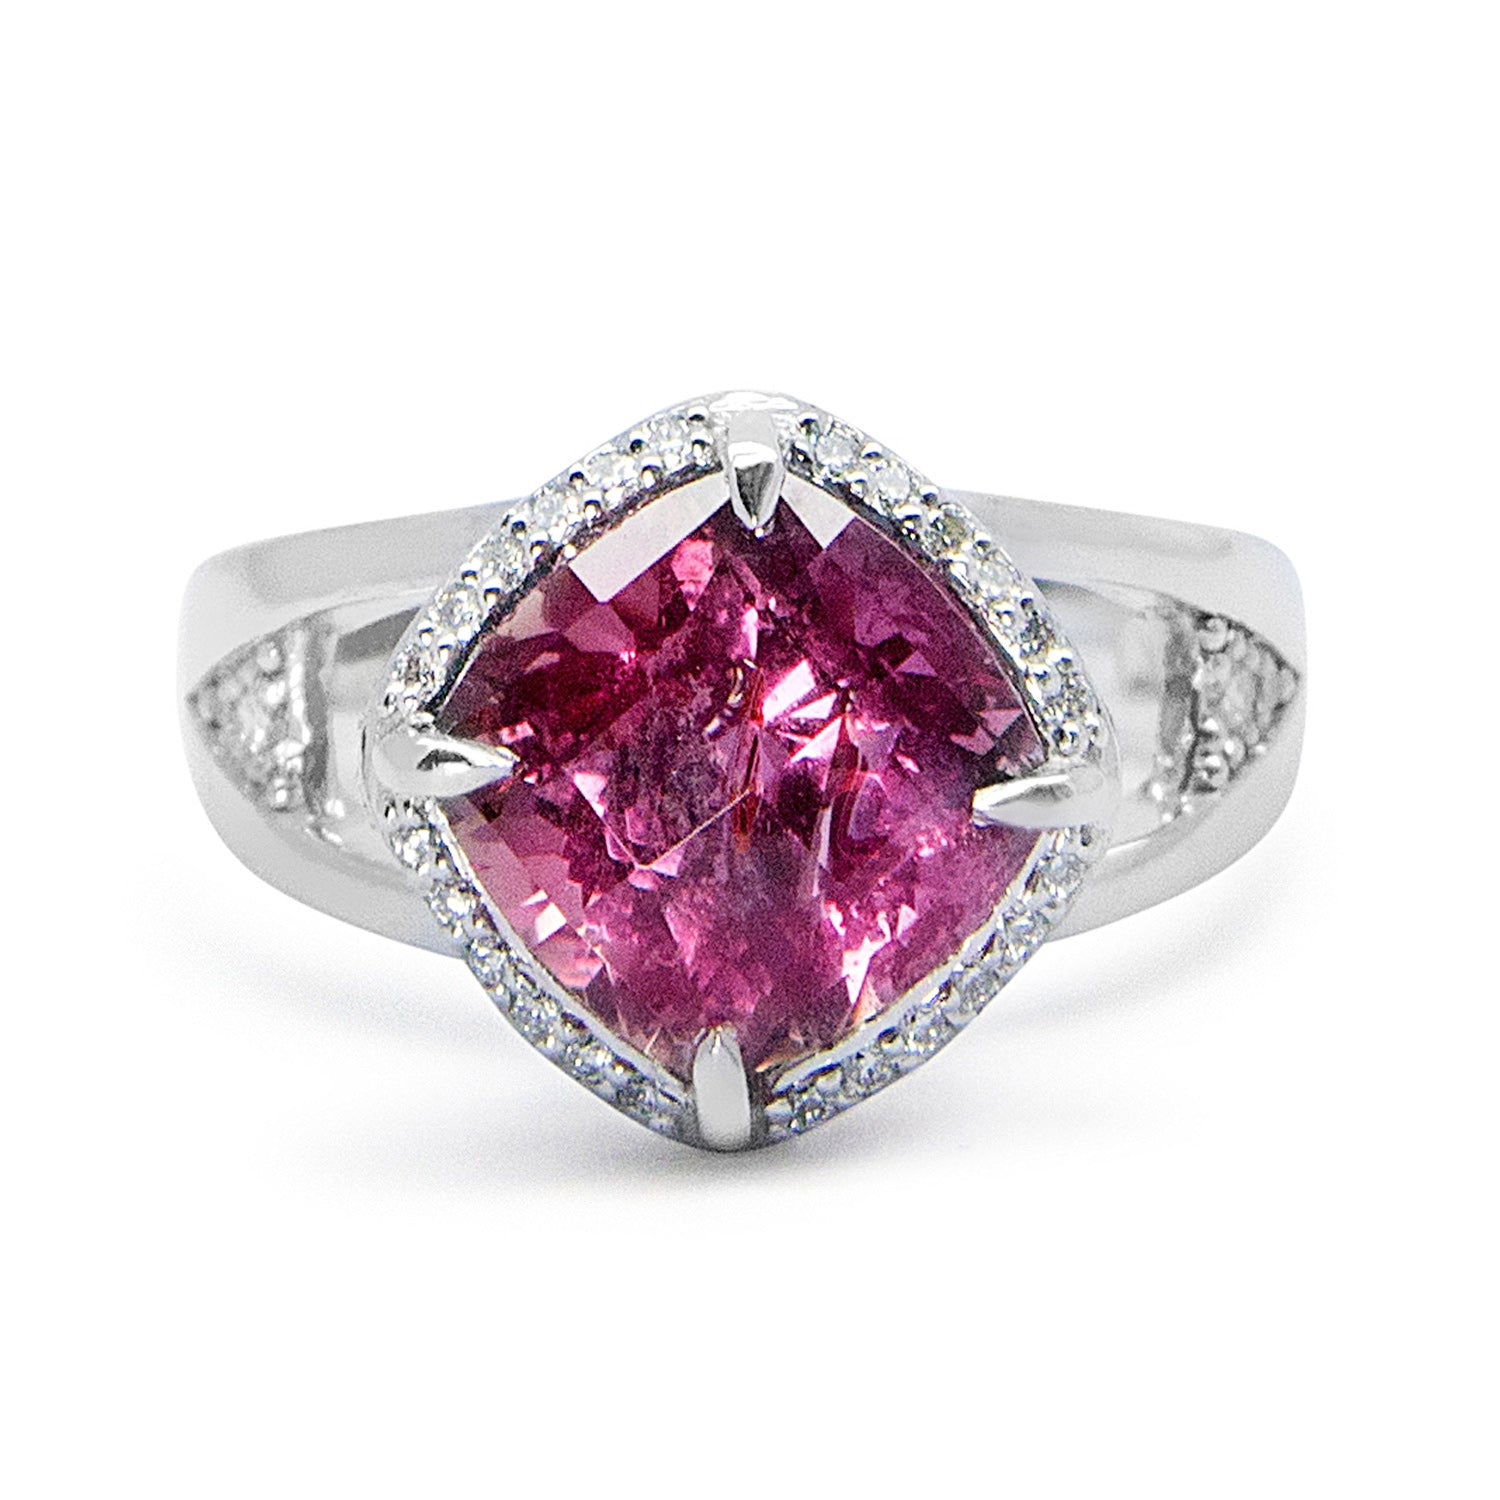 Bespoke Estelle cocktail ring - 18ct white Fairtrade Gold, client's own ethically-sourced pink sapphire and conflict-free diamonds